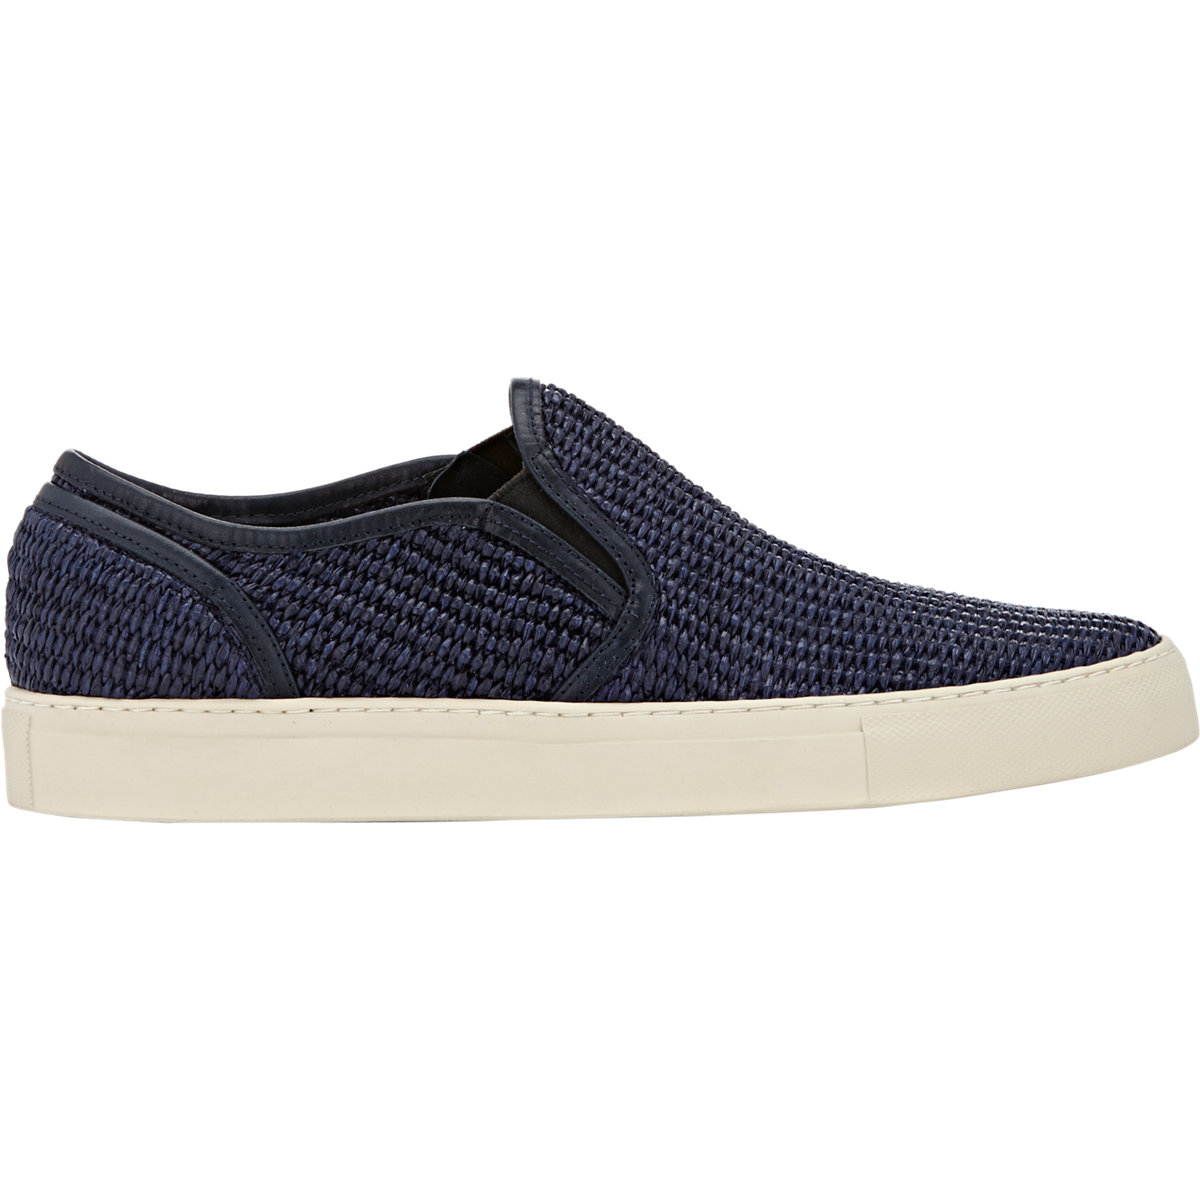 slip-on sneakers - Blue Buttero Collections Cheap Online Outlet Shop For Y0ccI